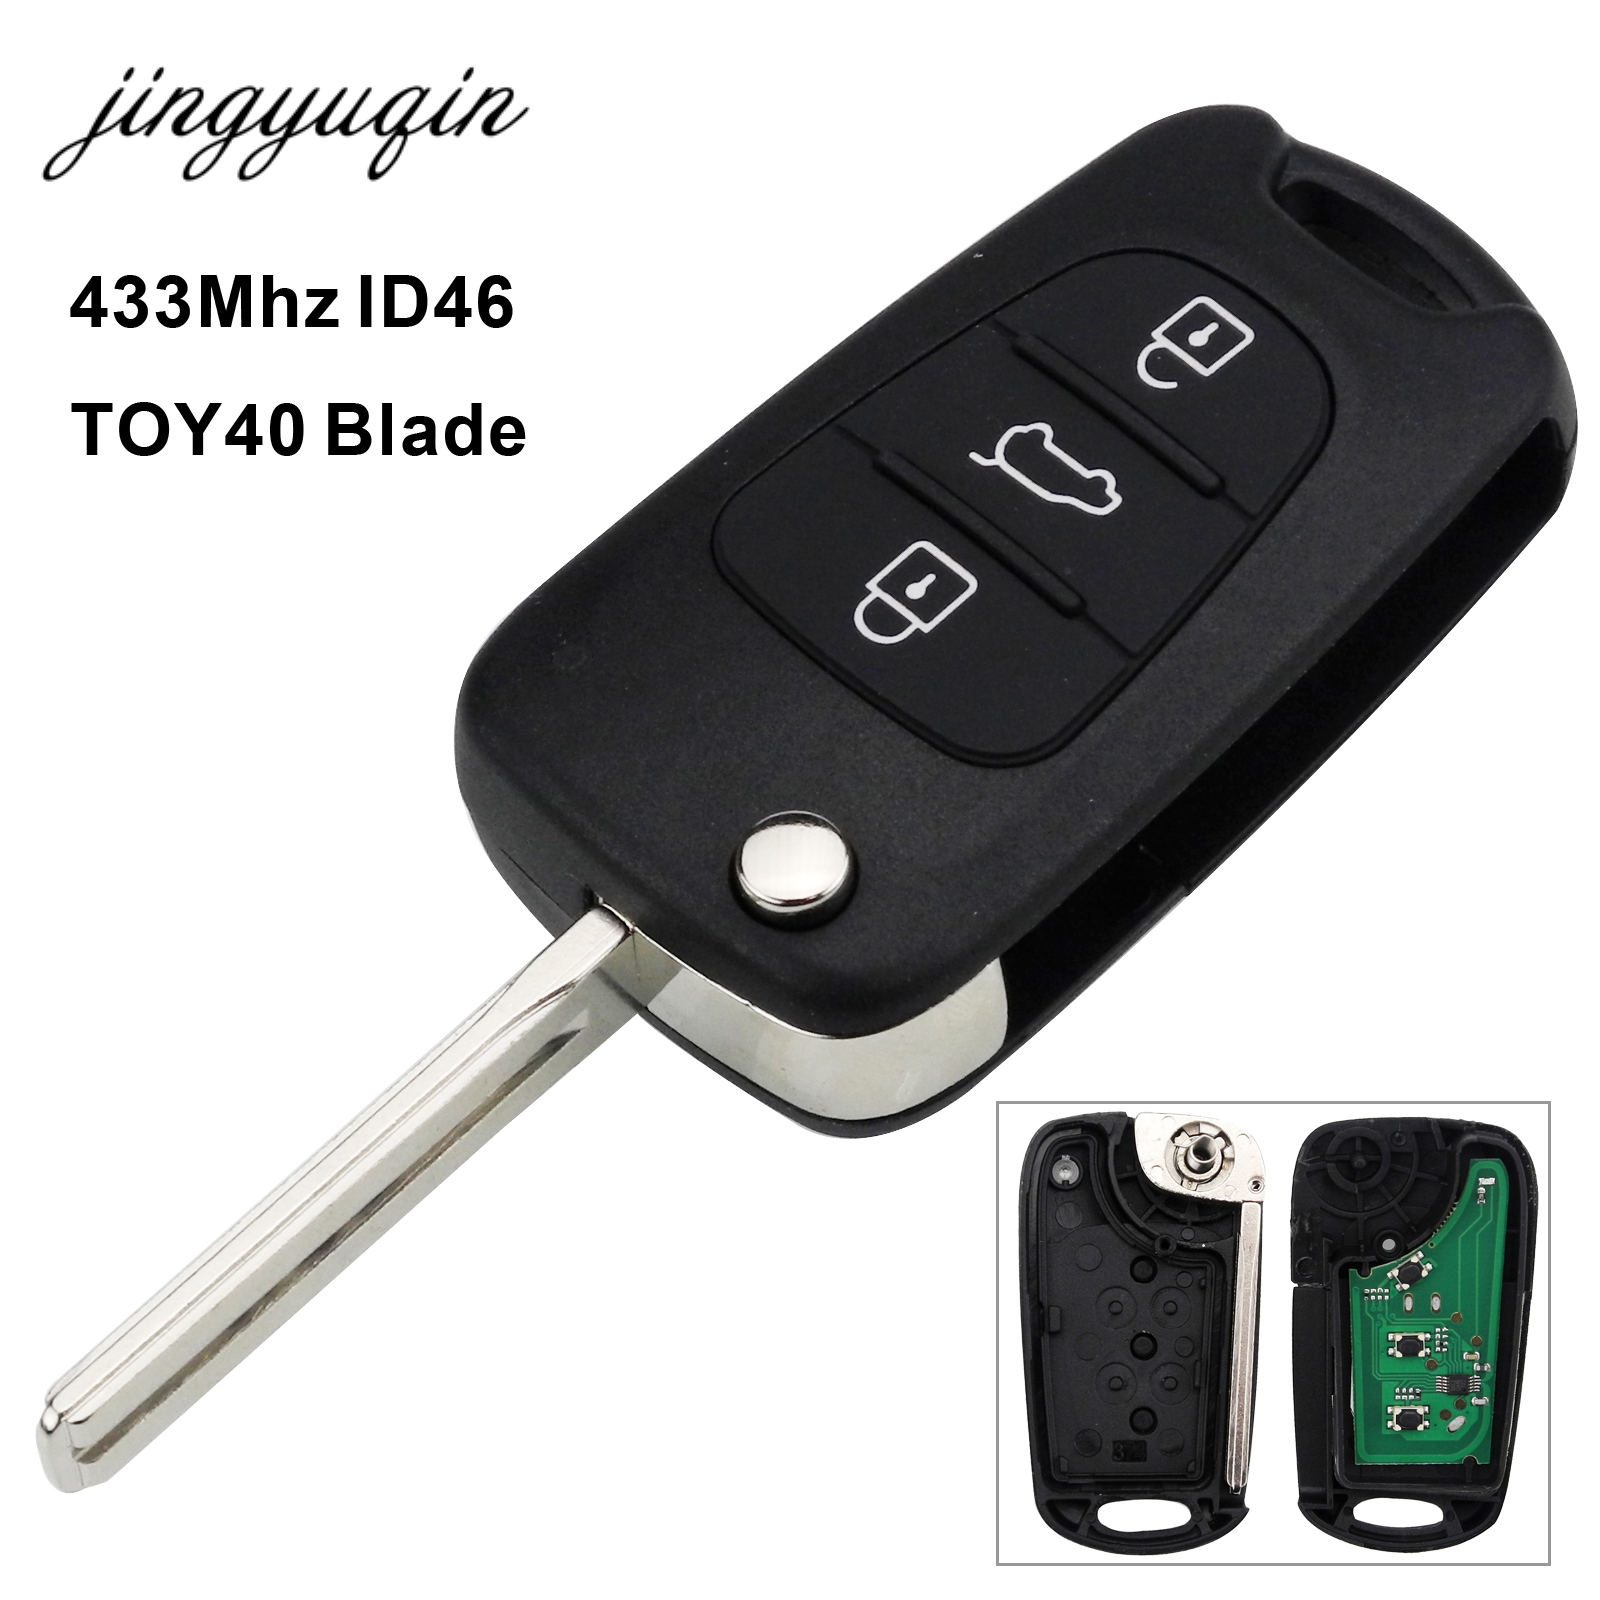 jingyuqin 433MHz Chip ID46 Remote Key Fob Fit For Hyundai I30 IX35 TOY40 Blade Replacement Folding Flip 3 Buttons Car Key maizhi 3 button flip folding car key shell for hyundai avante i30 ix35 kia k2 k5 sorento sportage key cover case styling